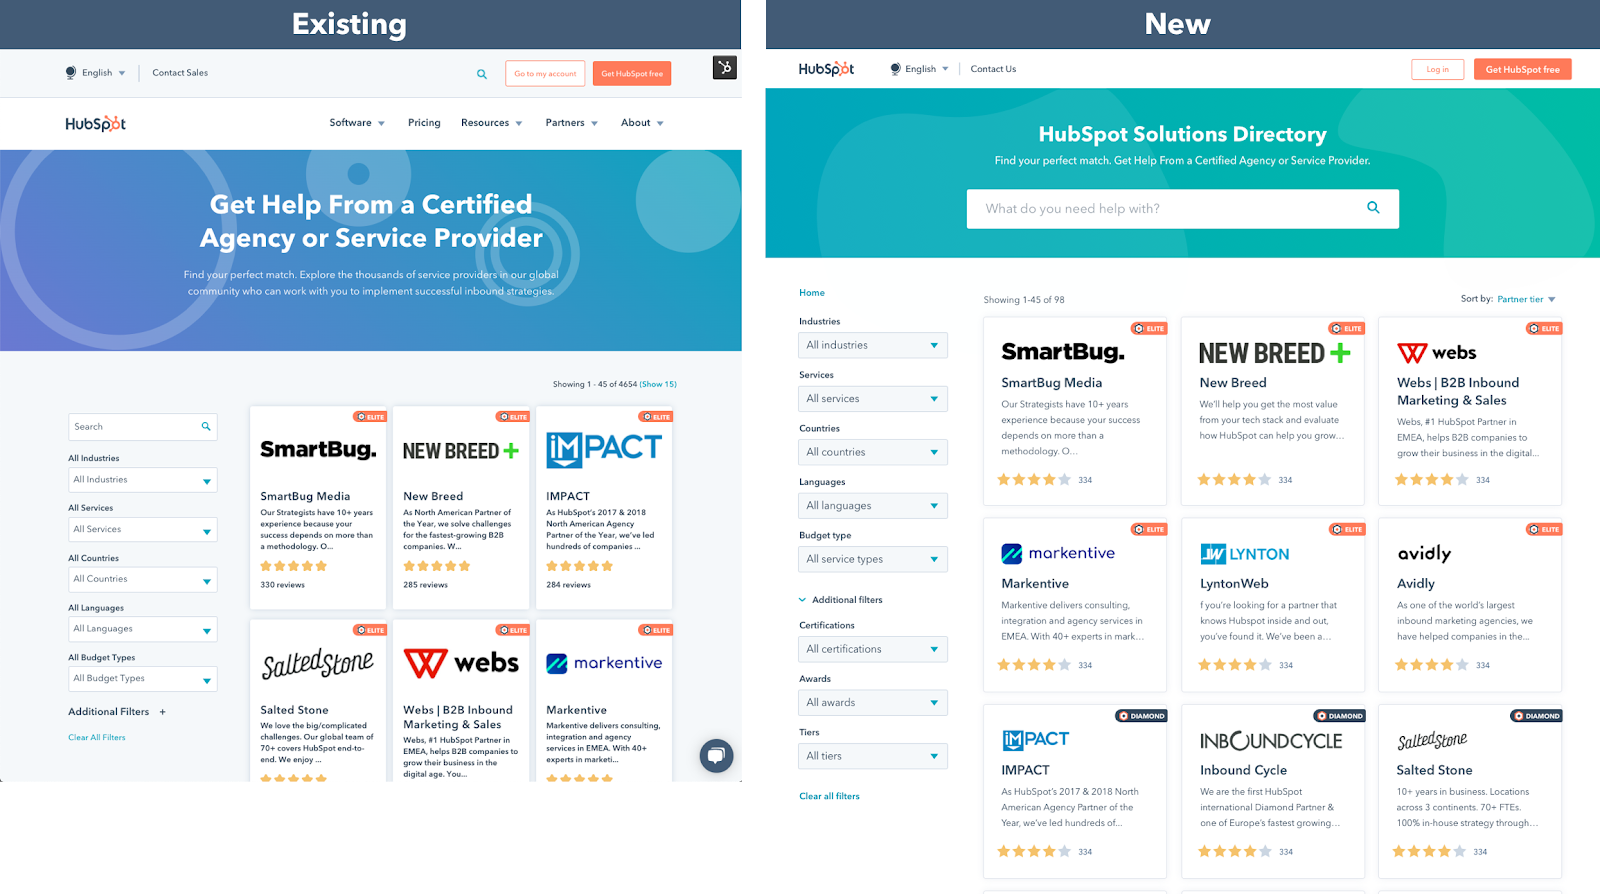 Side by side comparison of the existing Solutions Directory homepage and the new homepage